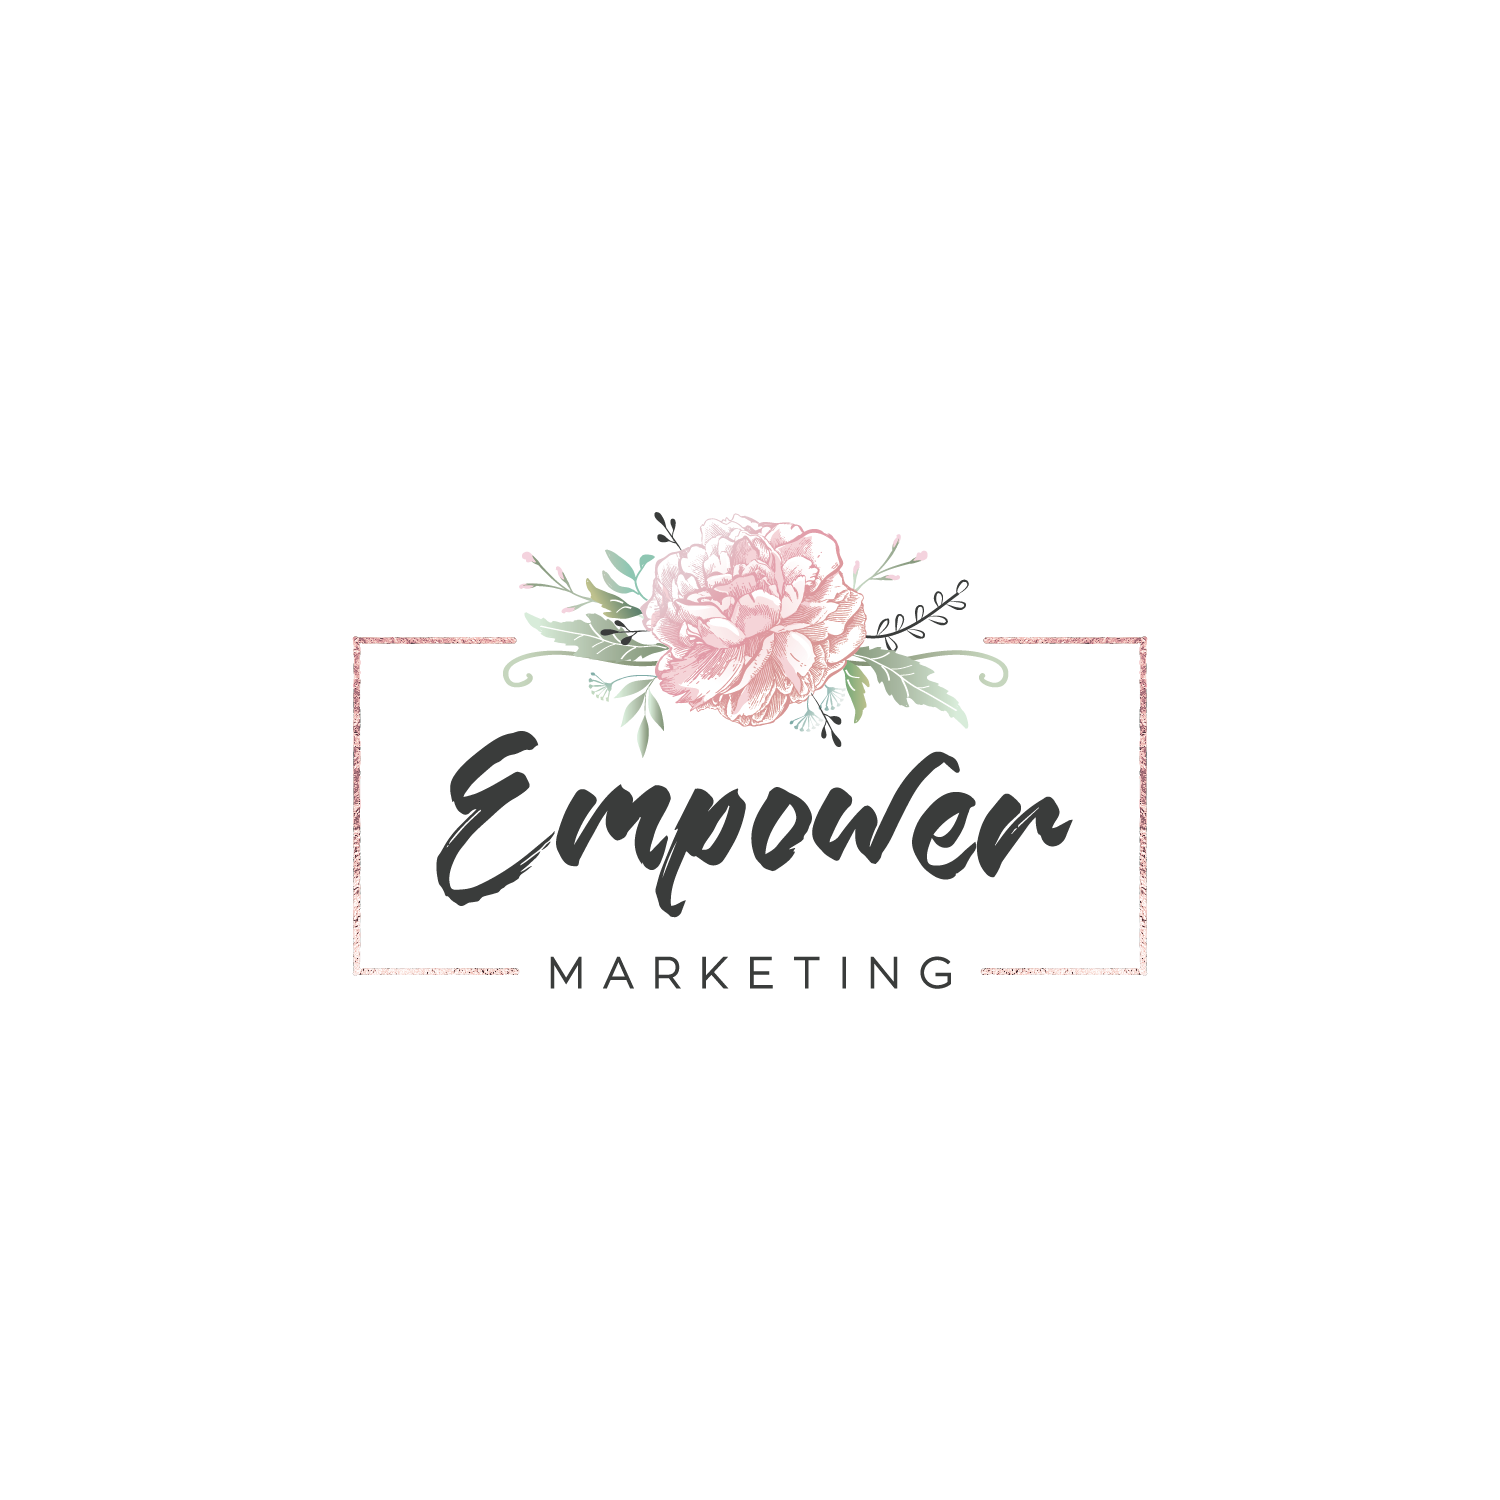 Social Media Marketing Consultant needs a powerful and beautiful logo.